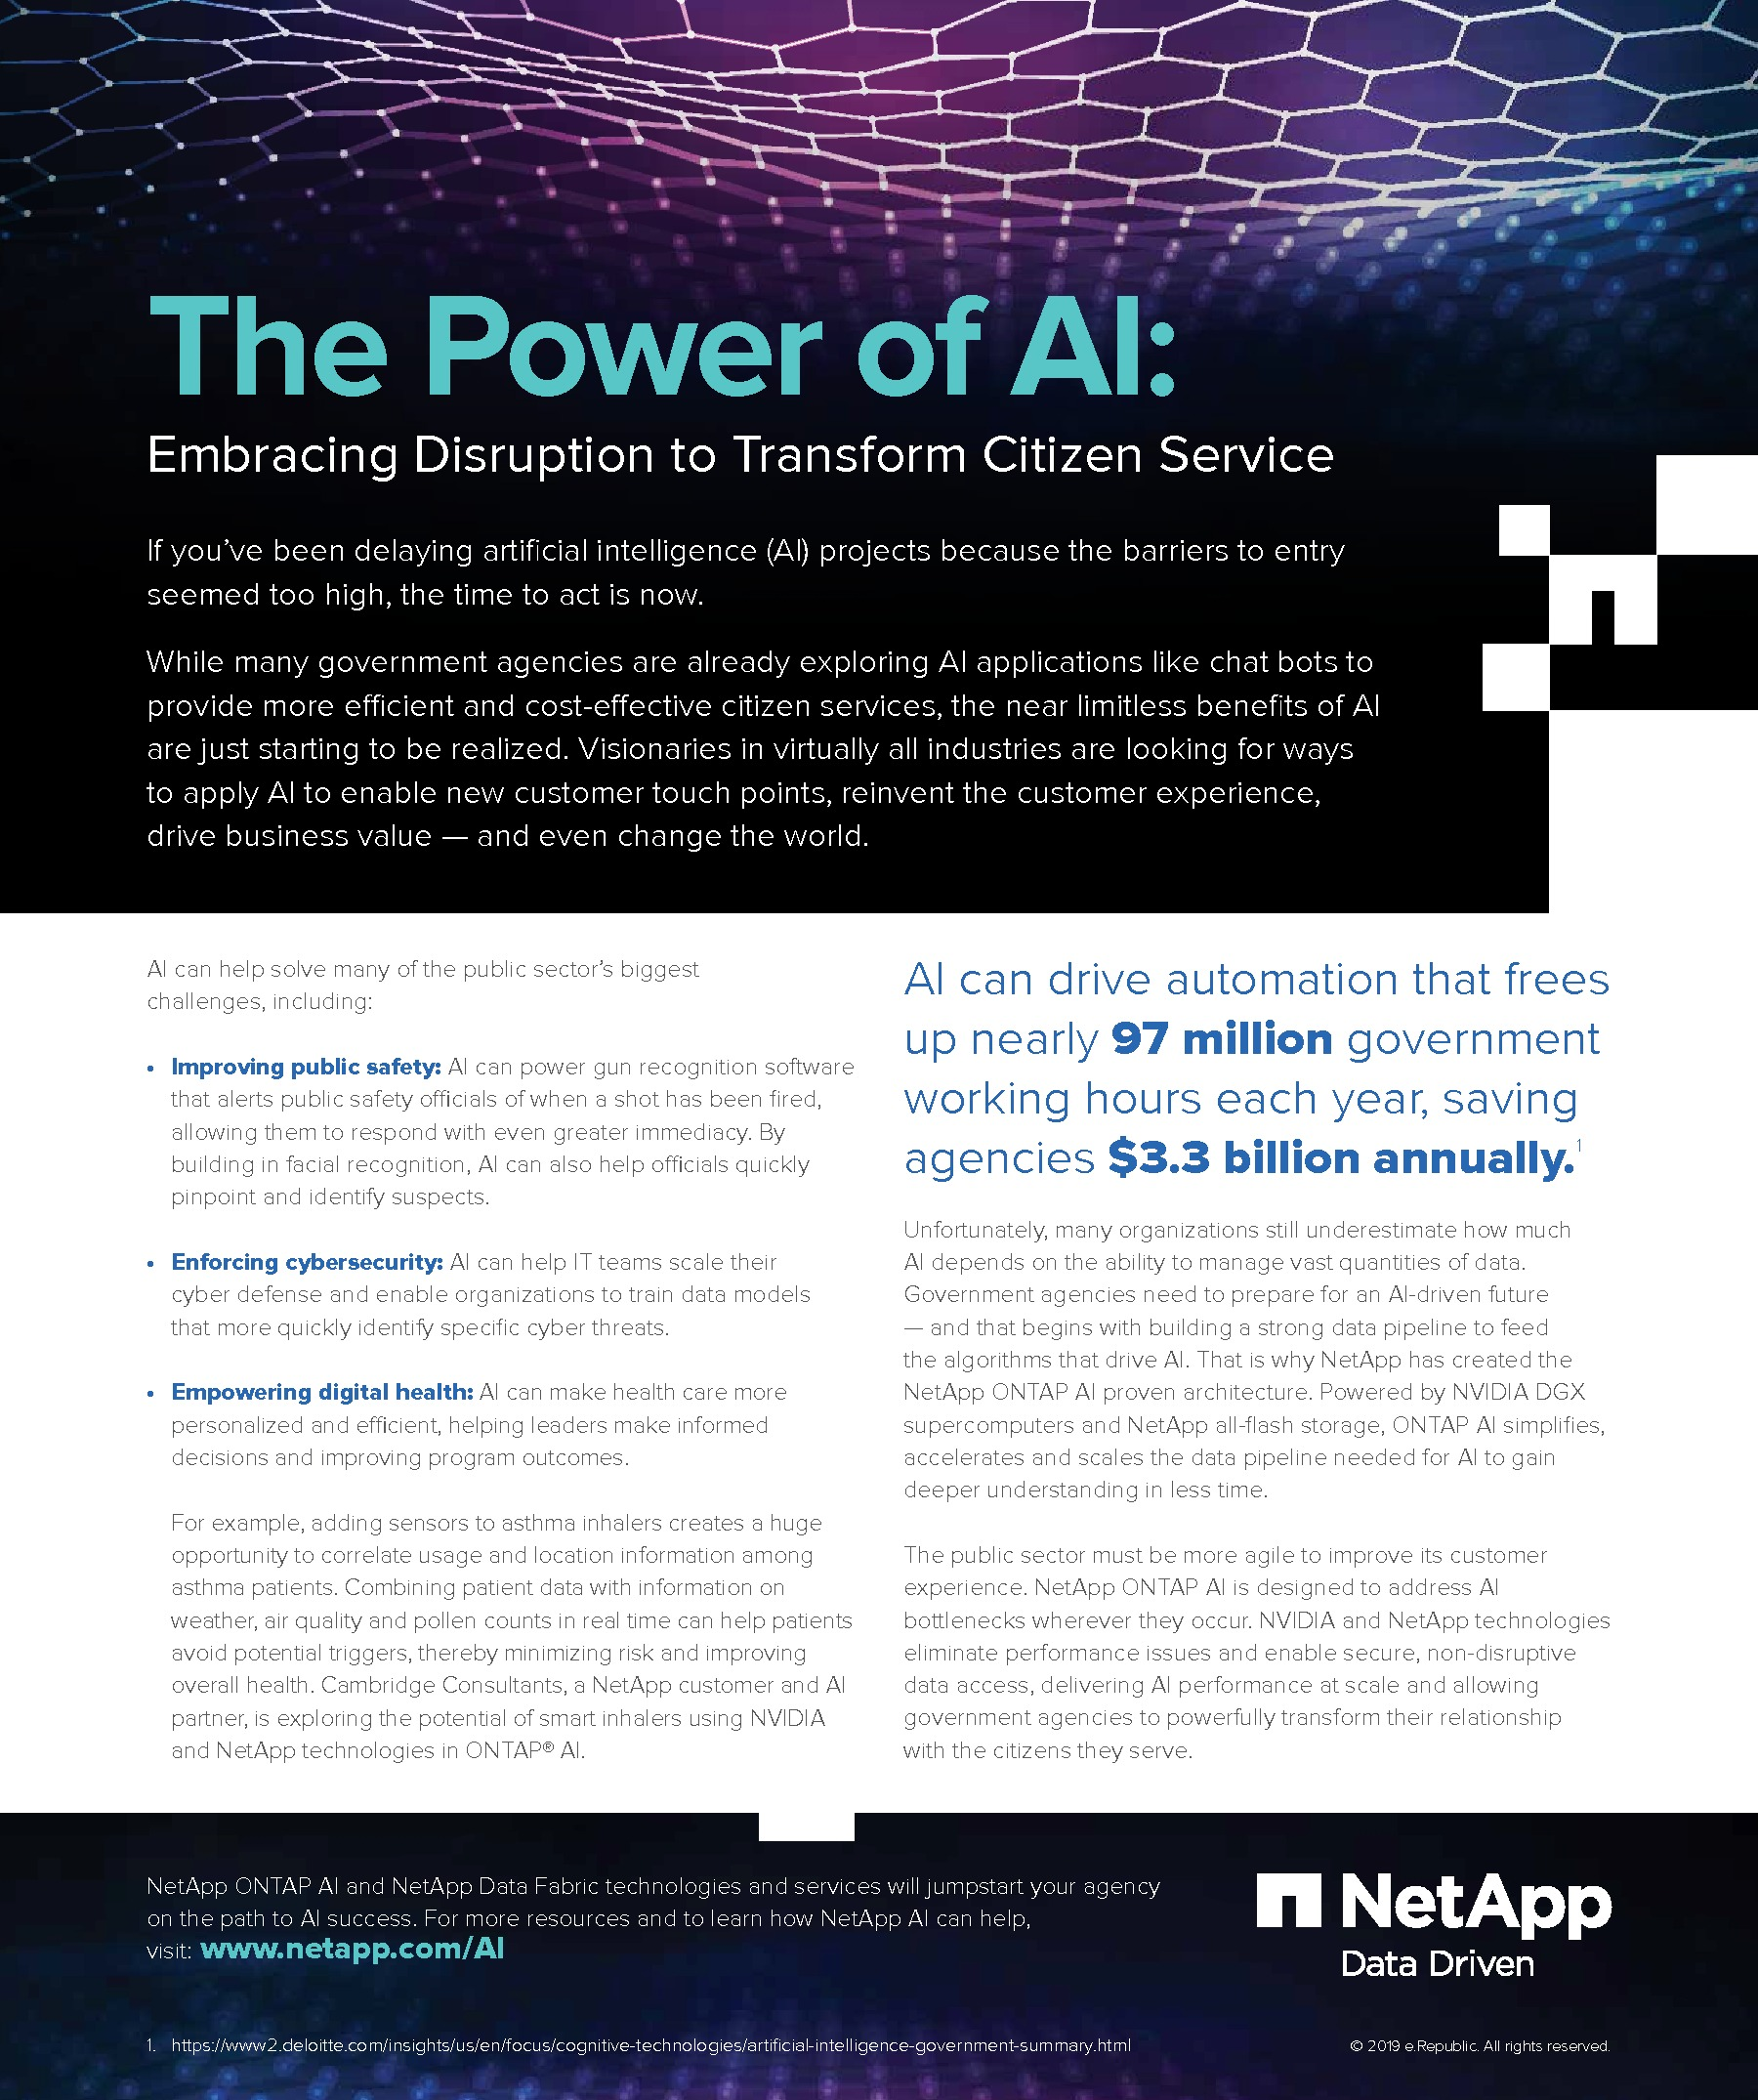 GT - NetApp - Client Supplied - 200109 - The Power of AI